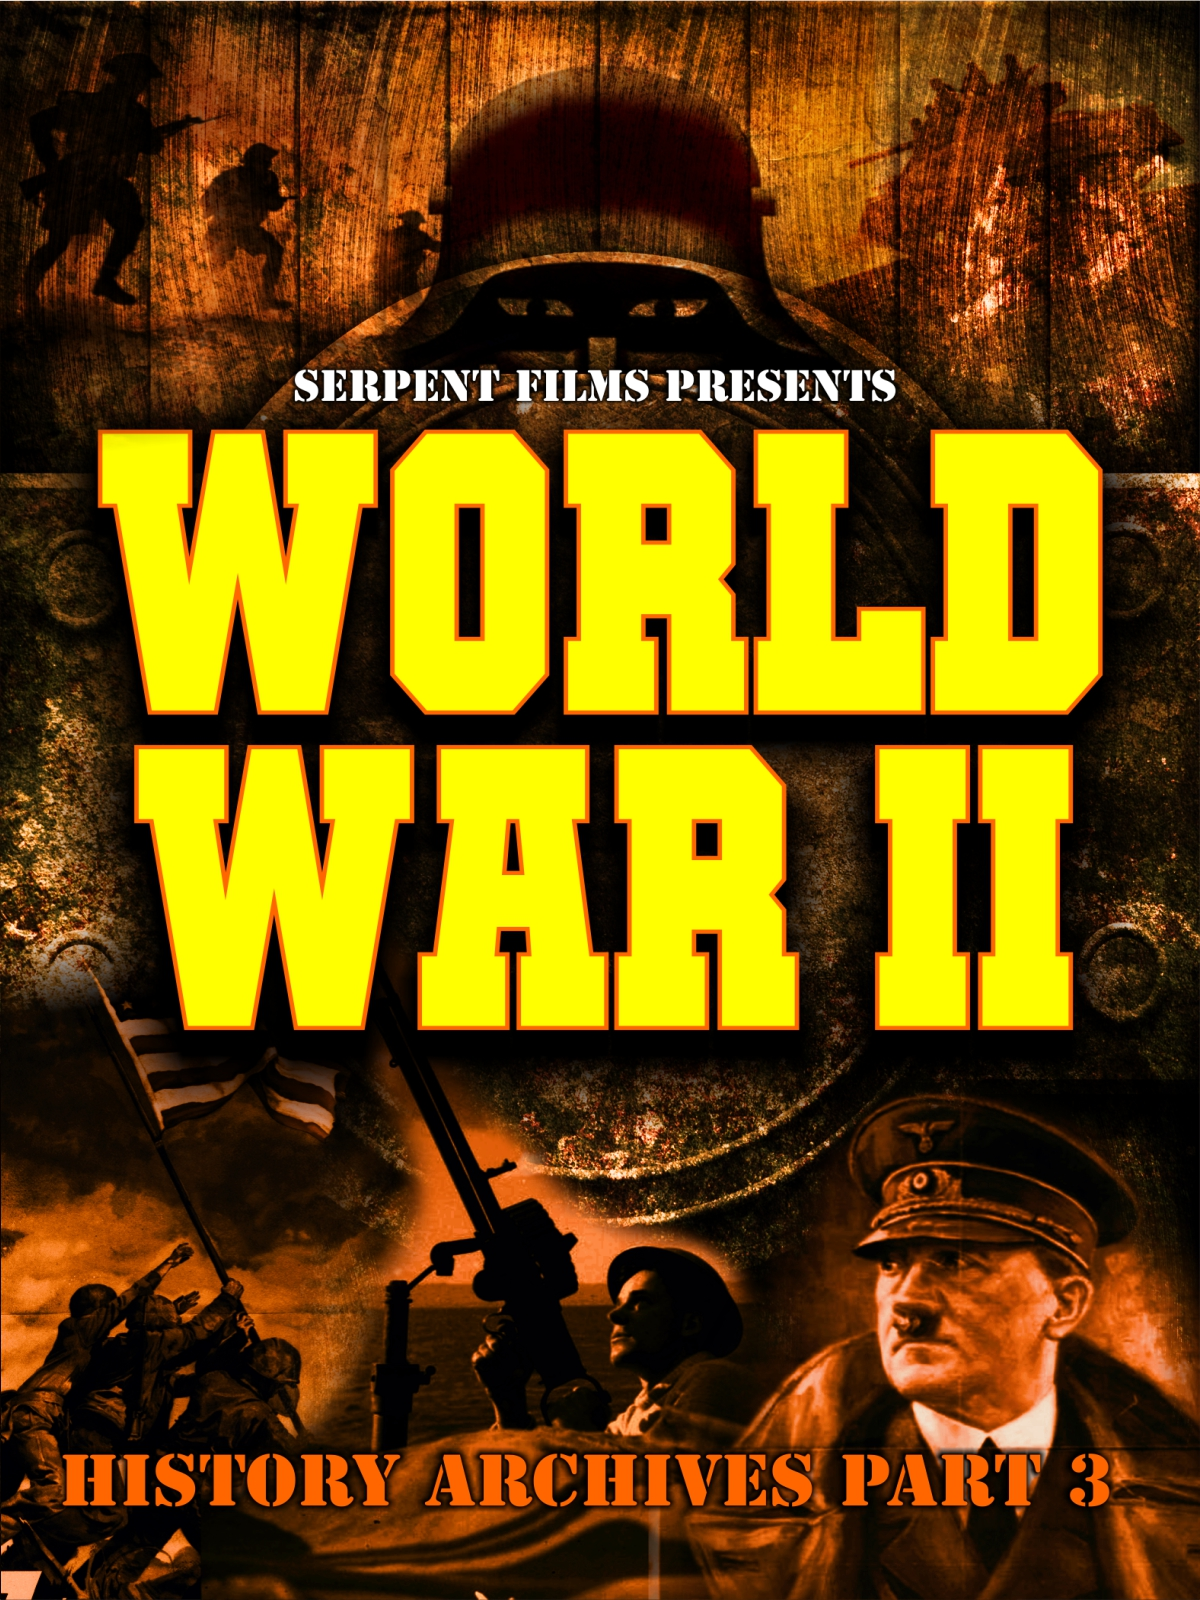 Classic Vintage Retro Movies Films Amp Wwii Documentaries